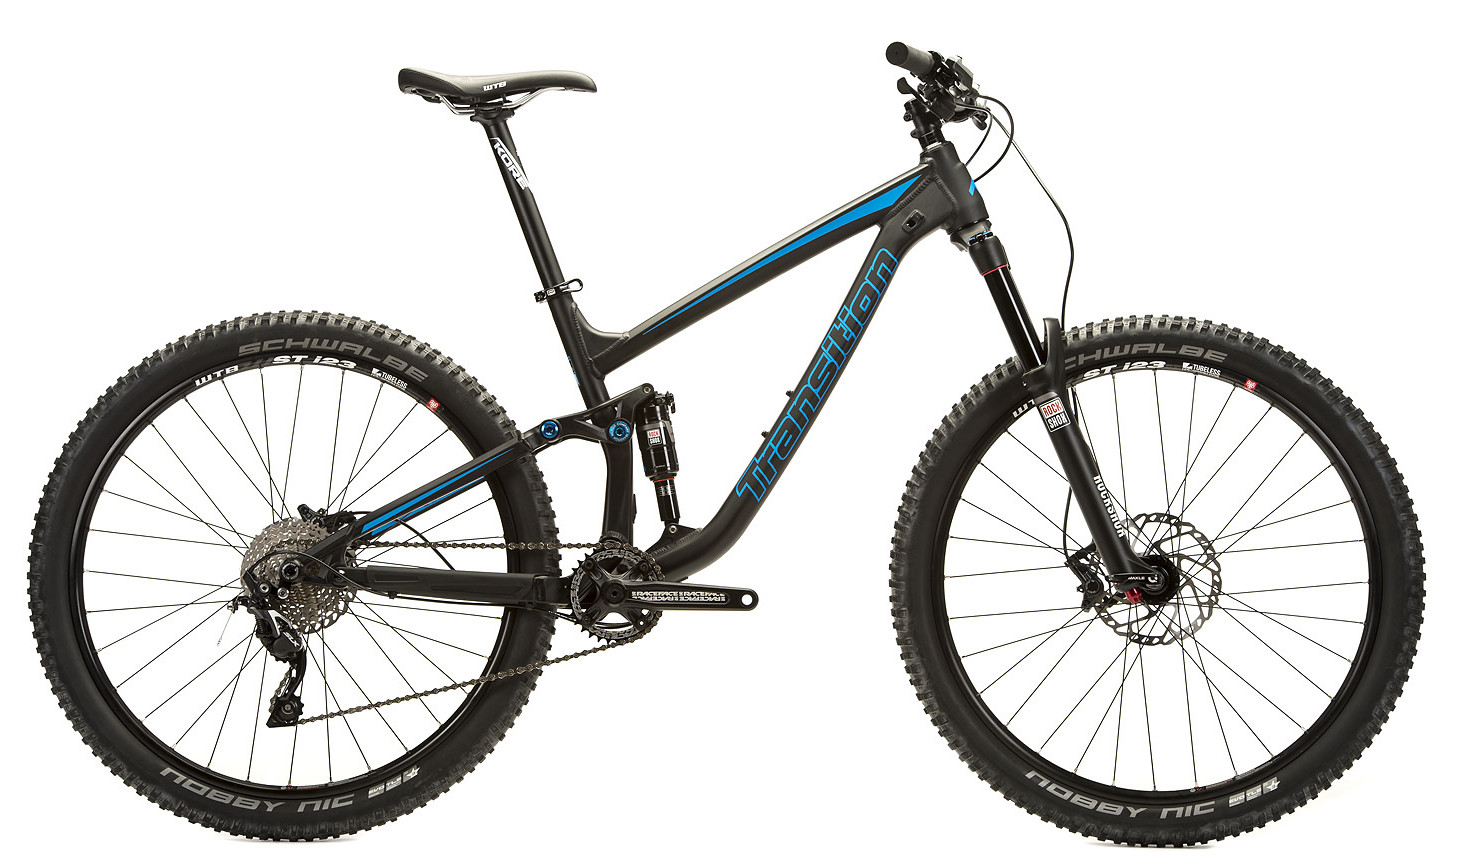 2015 Transition Scout 2 bike